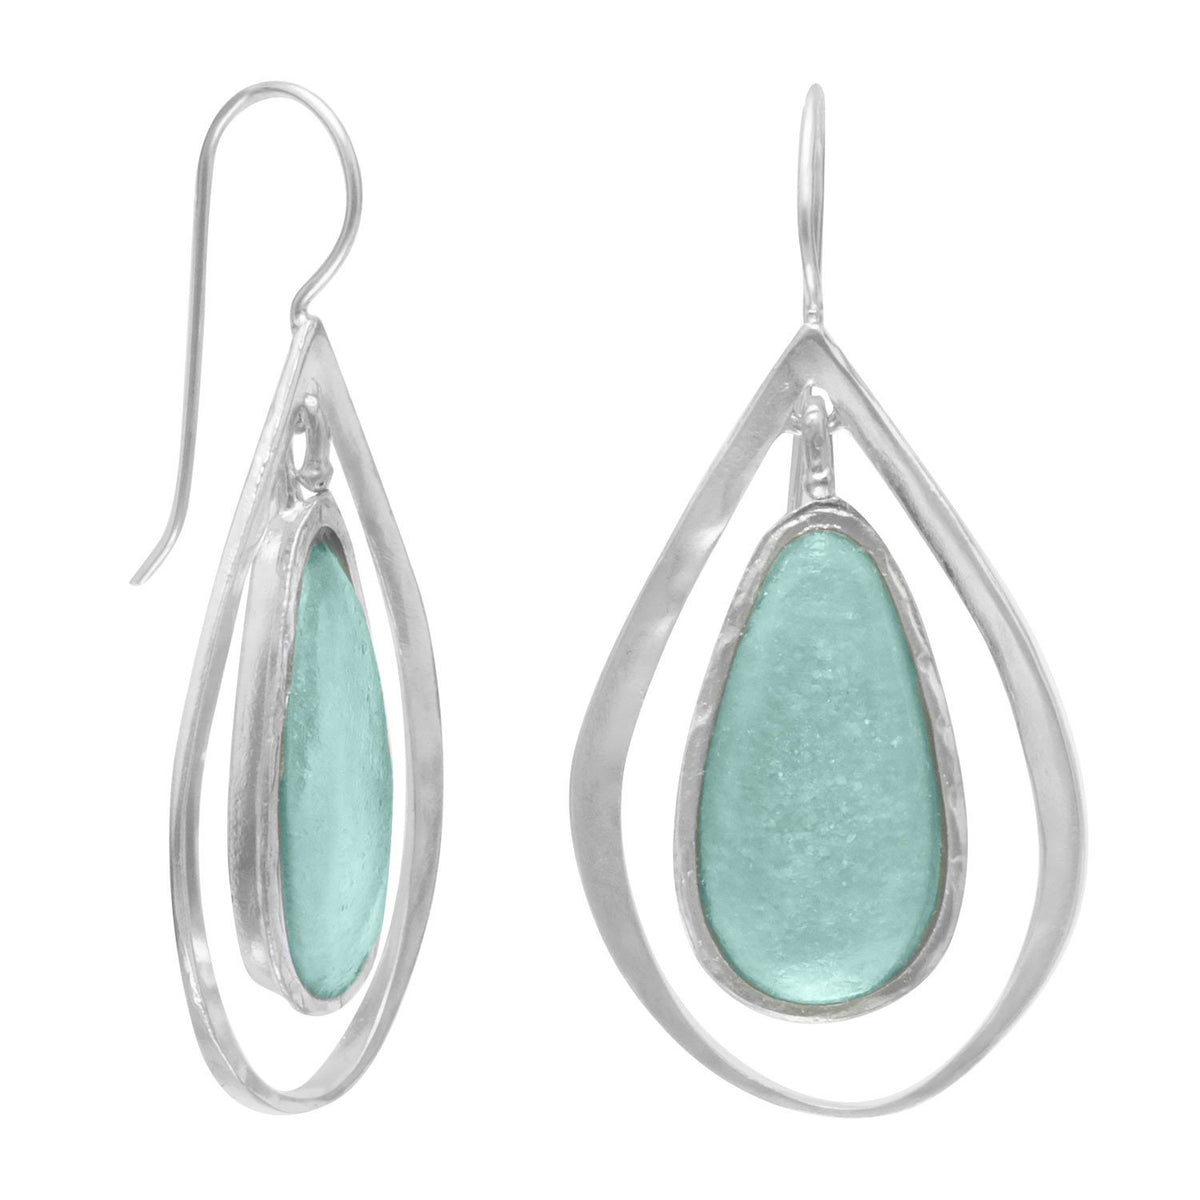 Ancient Roman Glass and Cut Out Design Earrings on French Wire – 3 ...